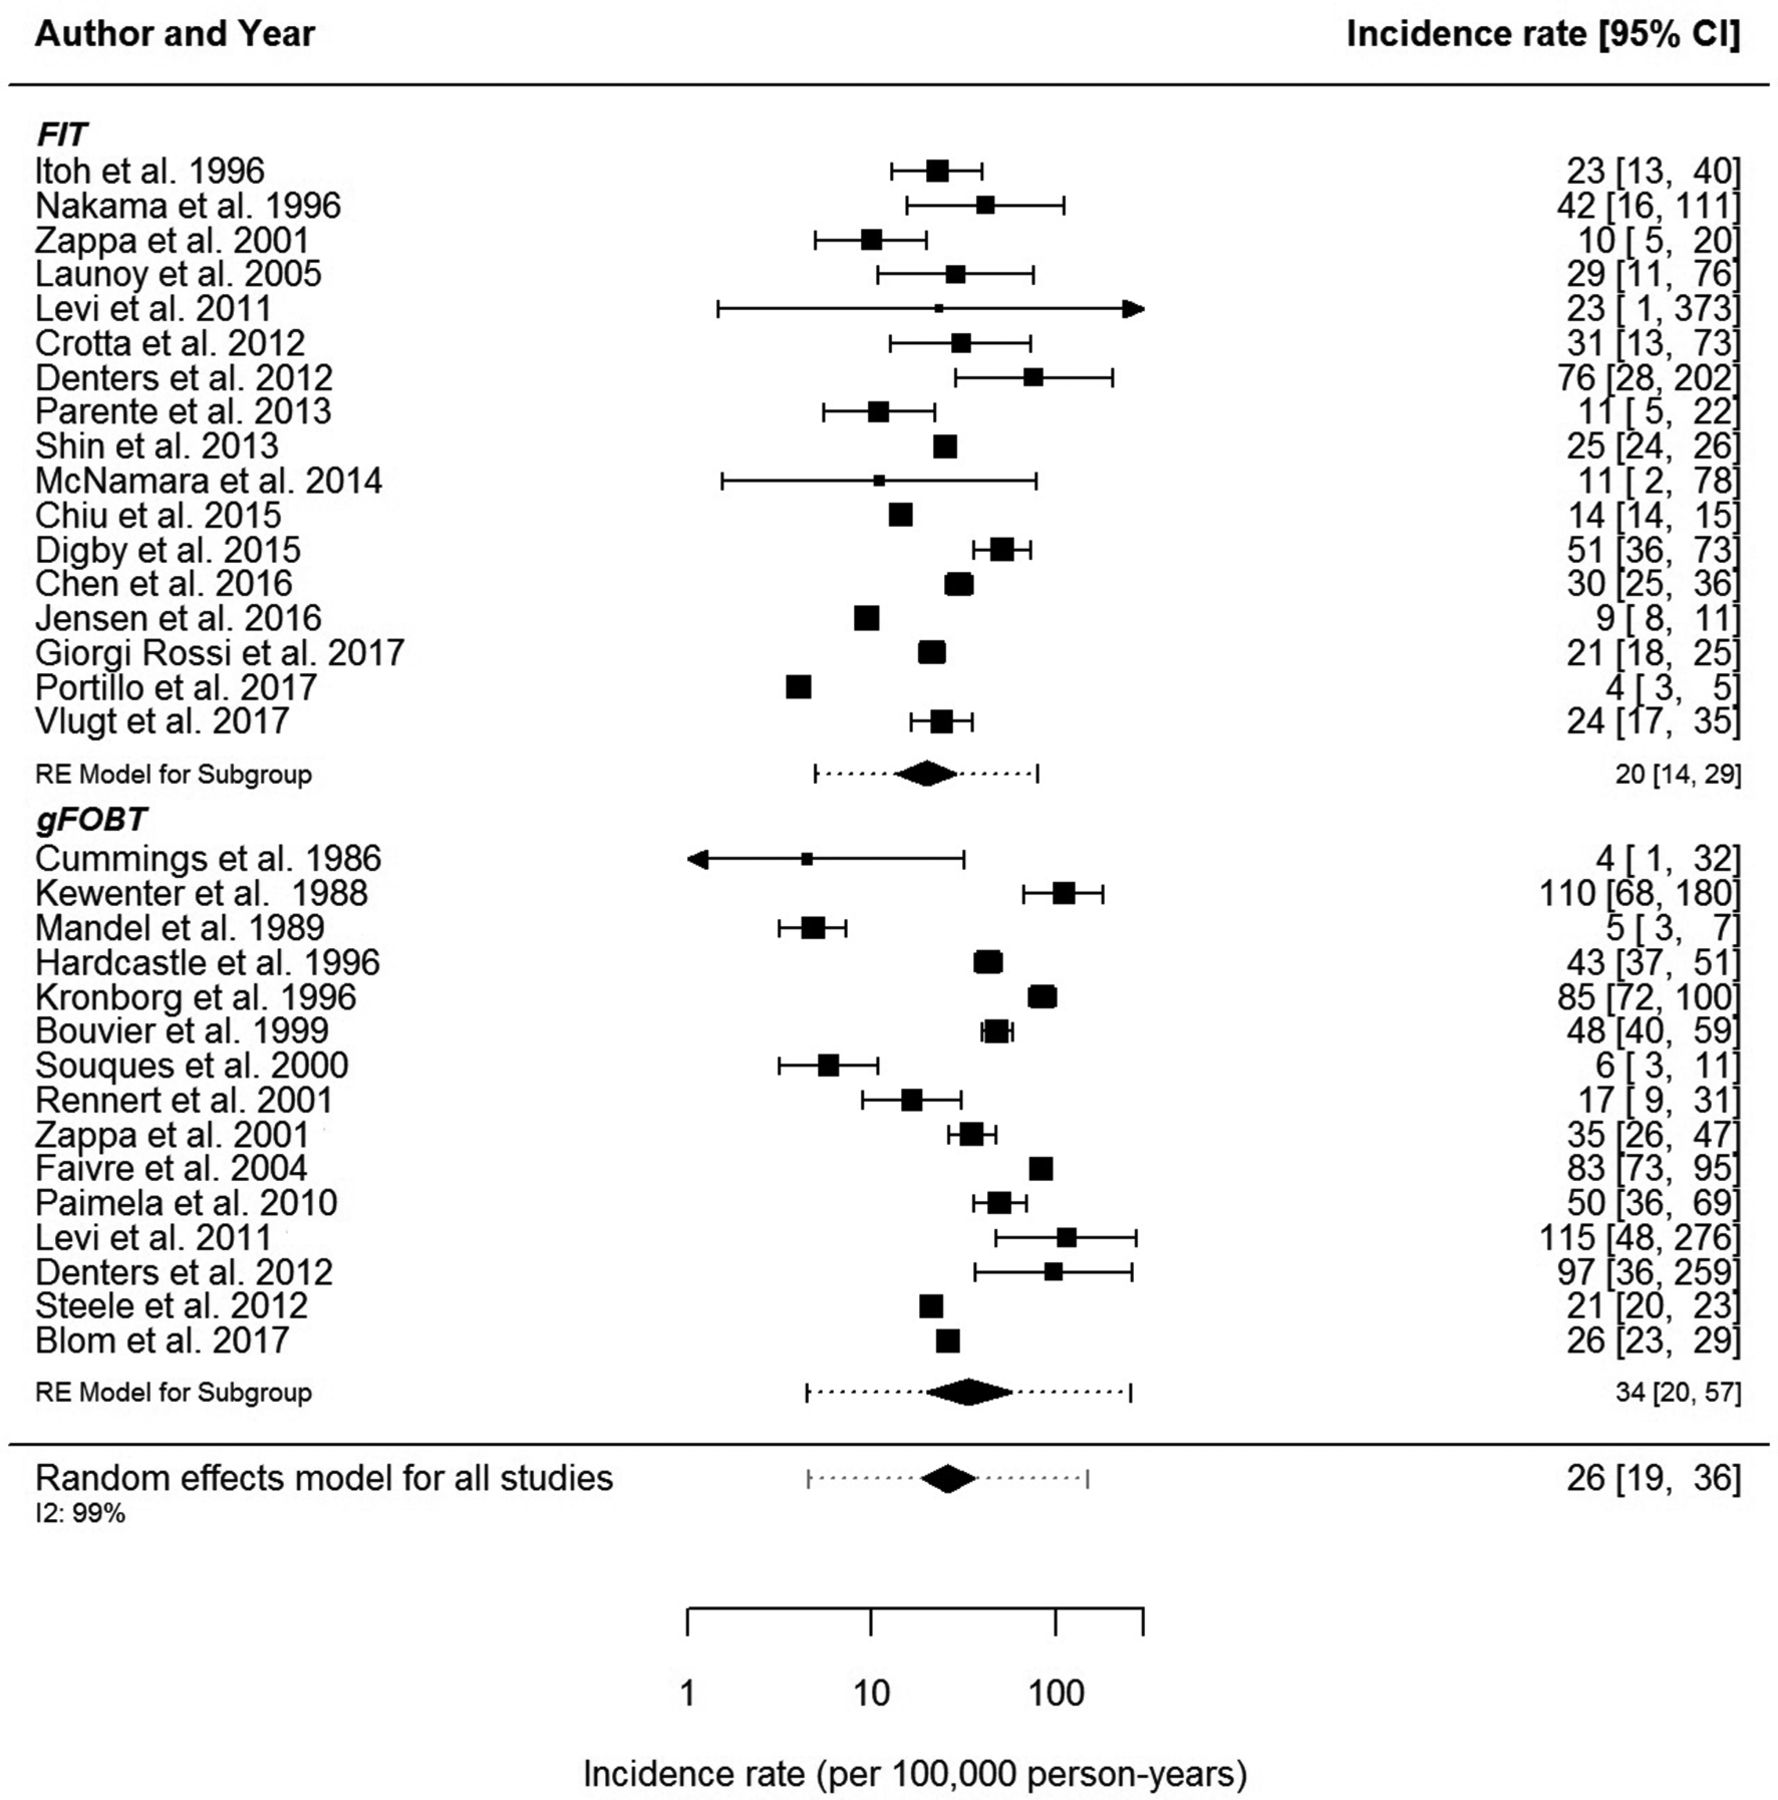 Incidence Of Faecal Occult Blood Test Interval Cancers In Population Based Colorectal Cancer Screening A Systematic Review And Meta Analysis Gut